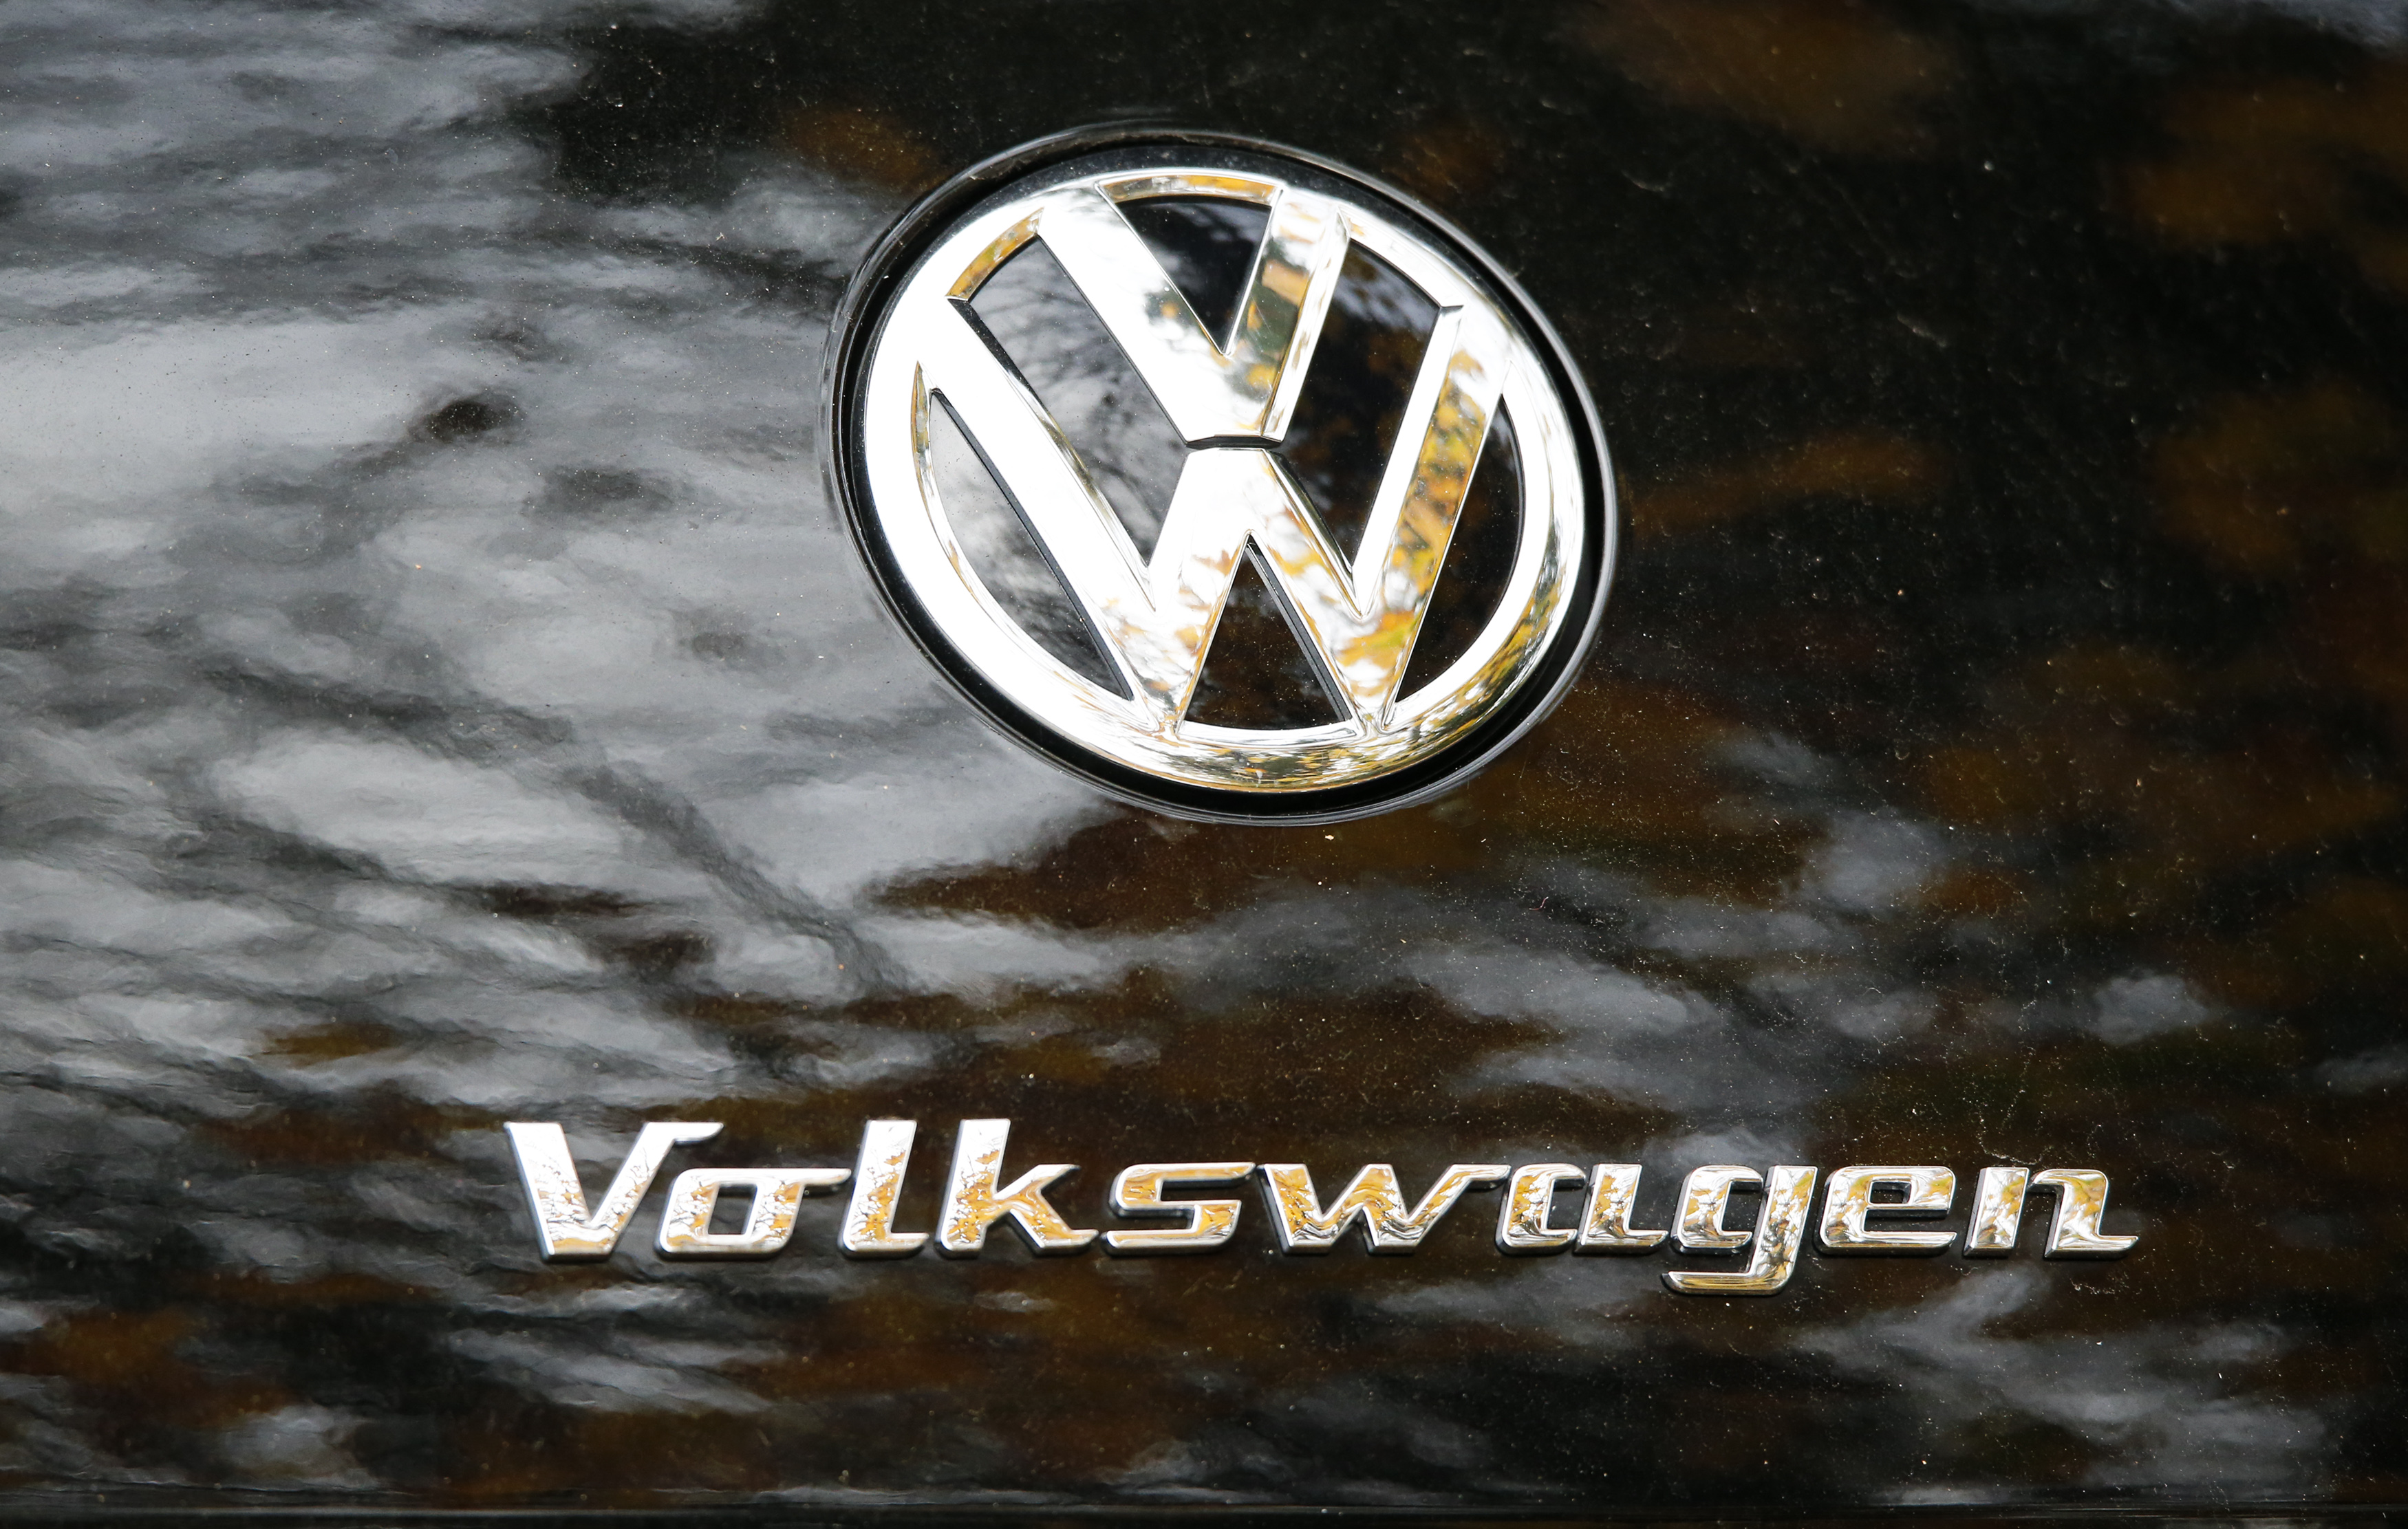 Embattled Volkswagen has bought back half of polluting vehicles